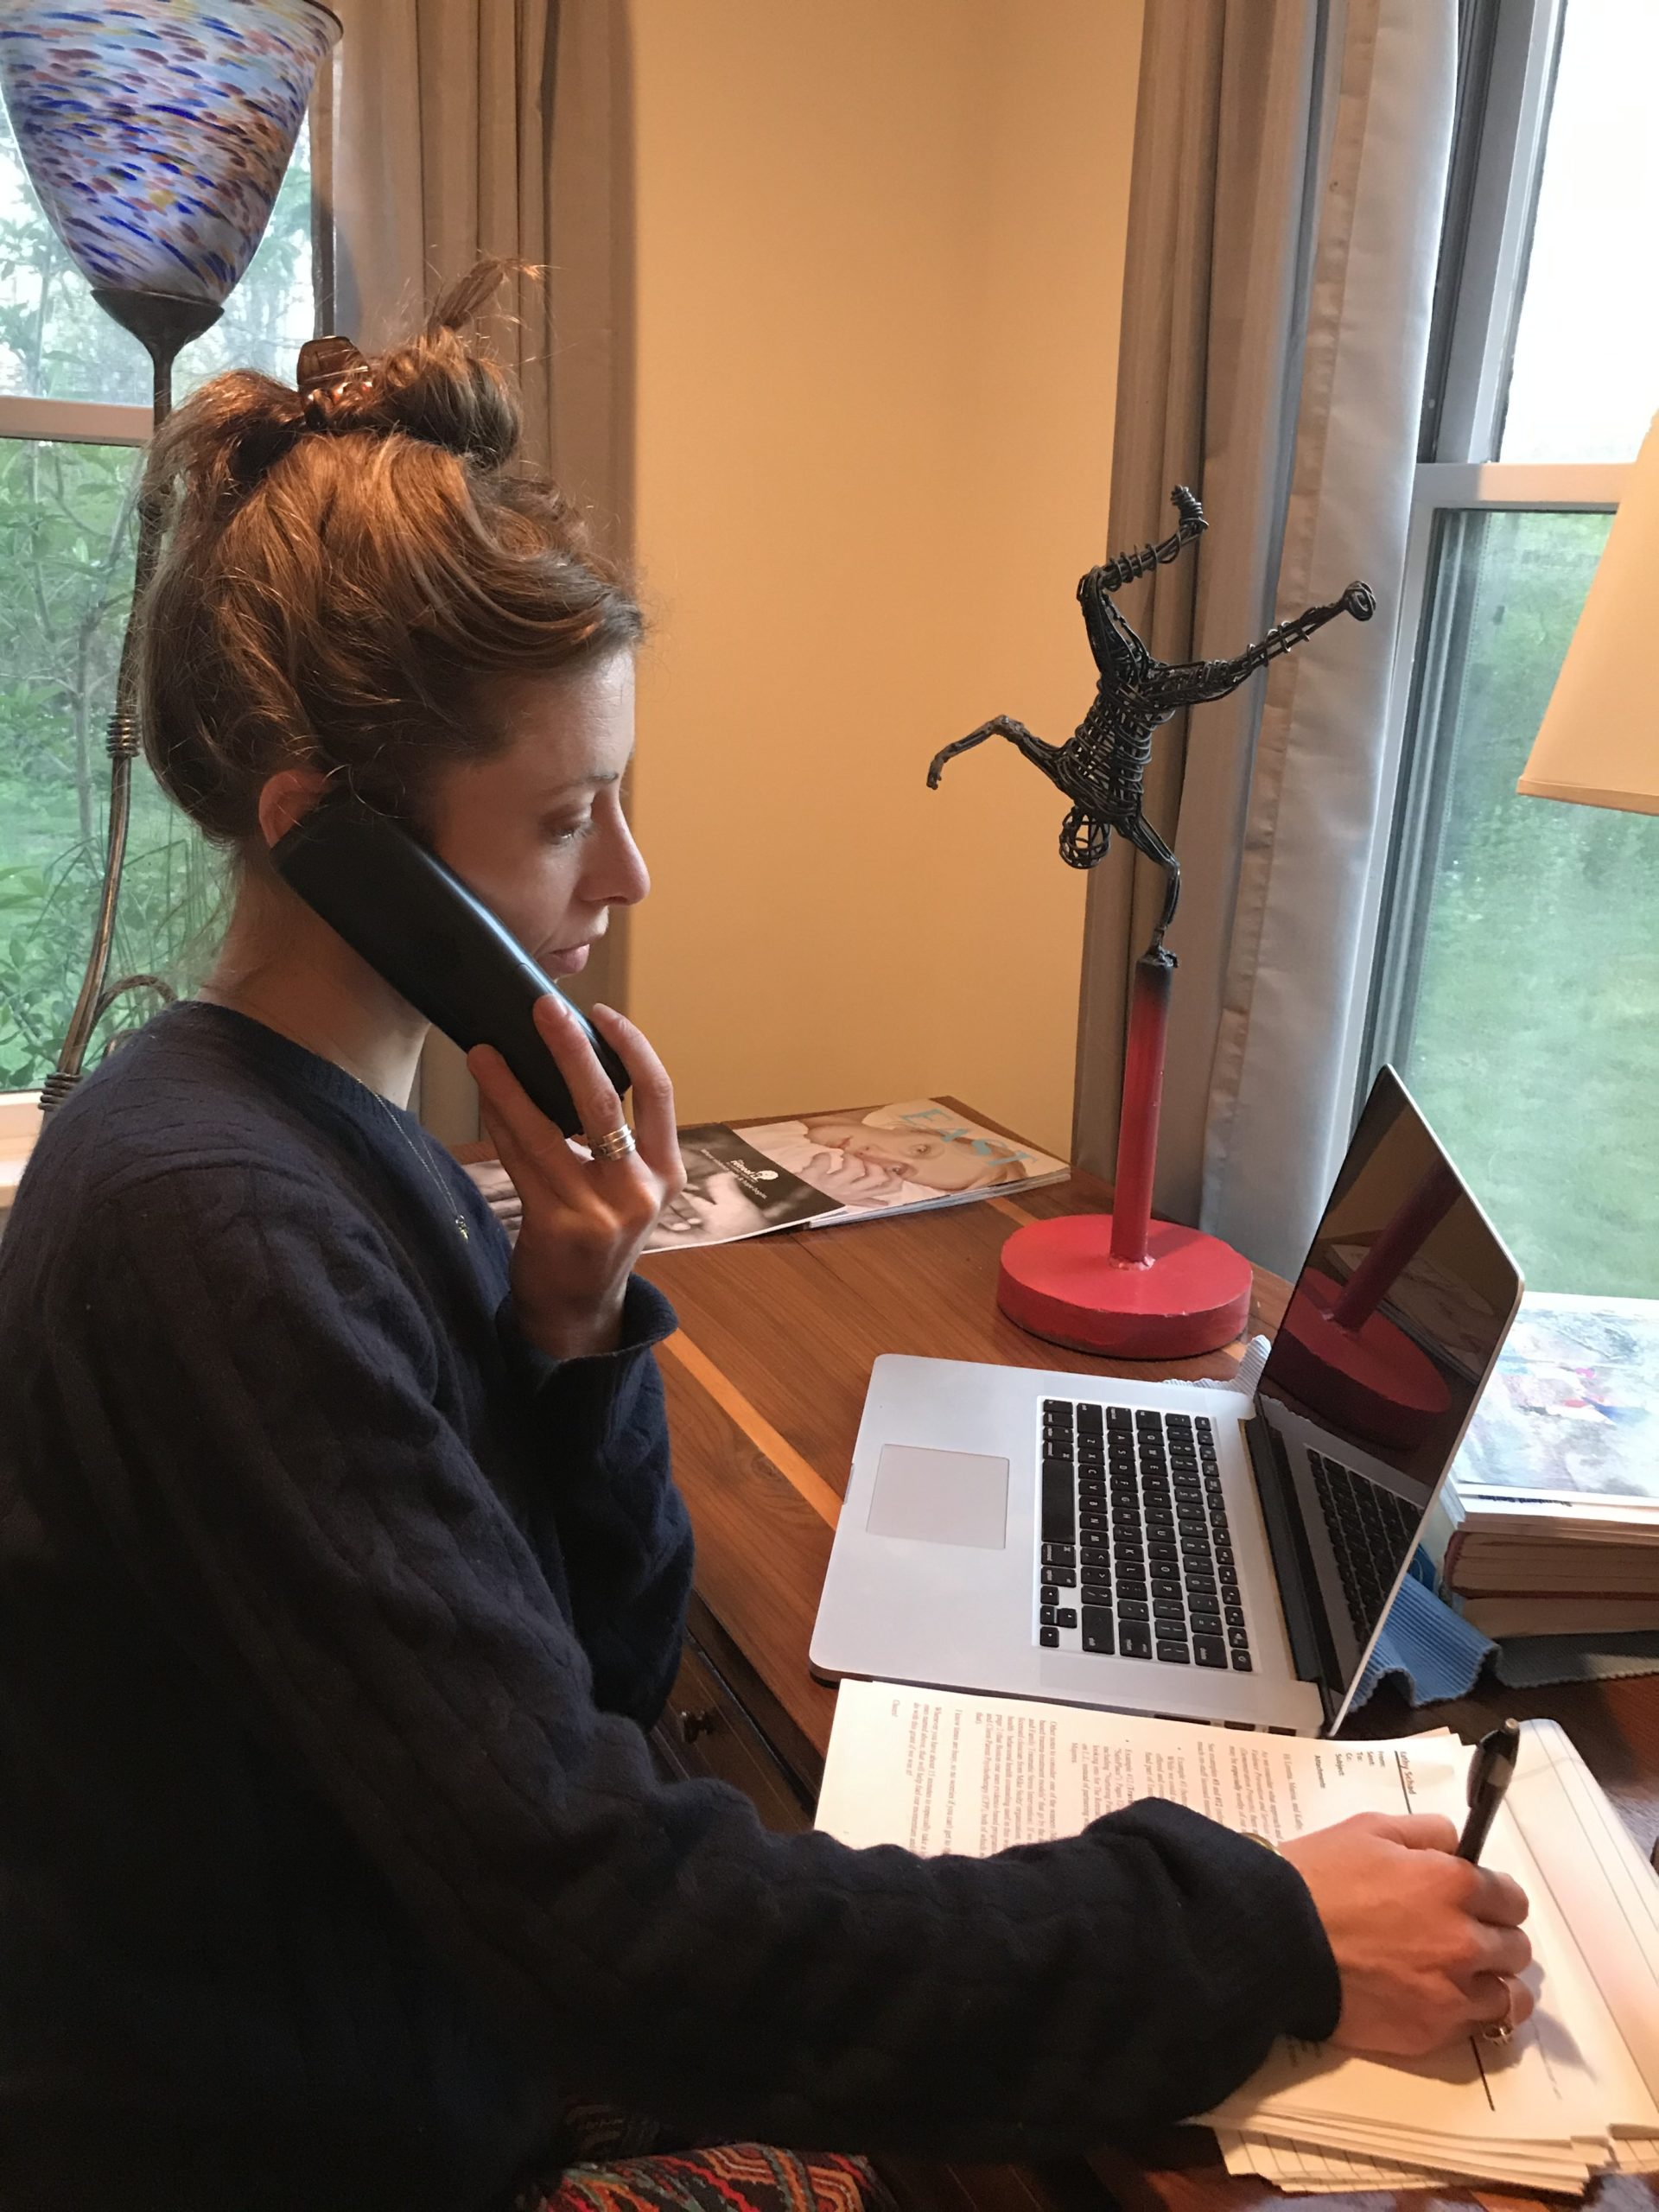 Julia, a volunteer for The Retreat, answers a call on the 24-hour emergency hotline.